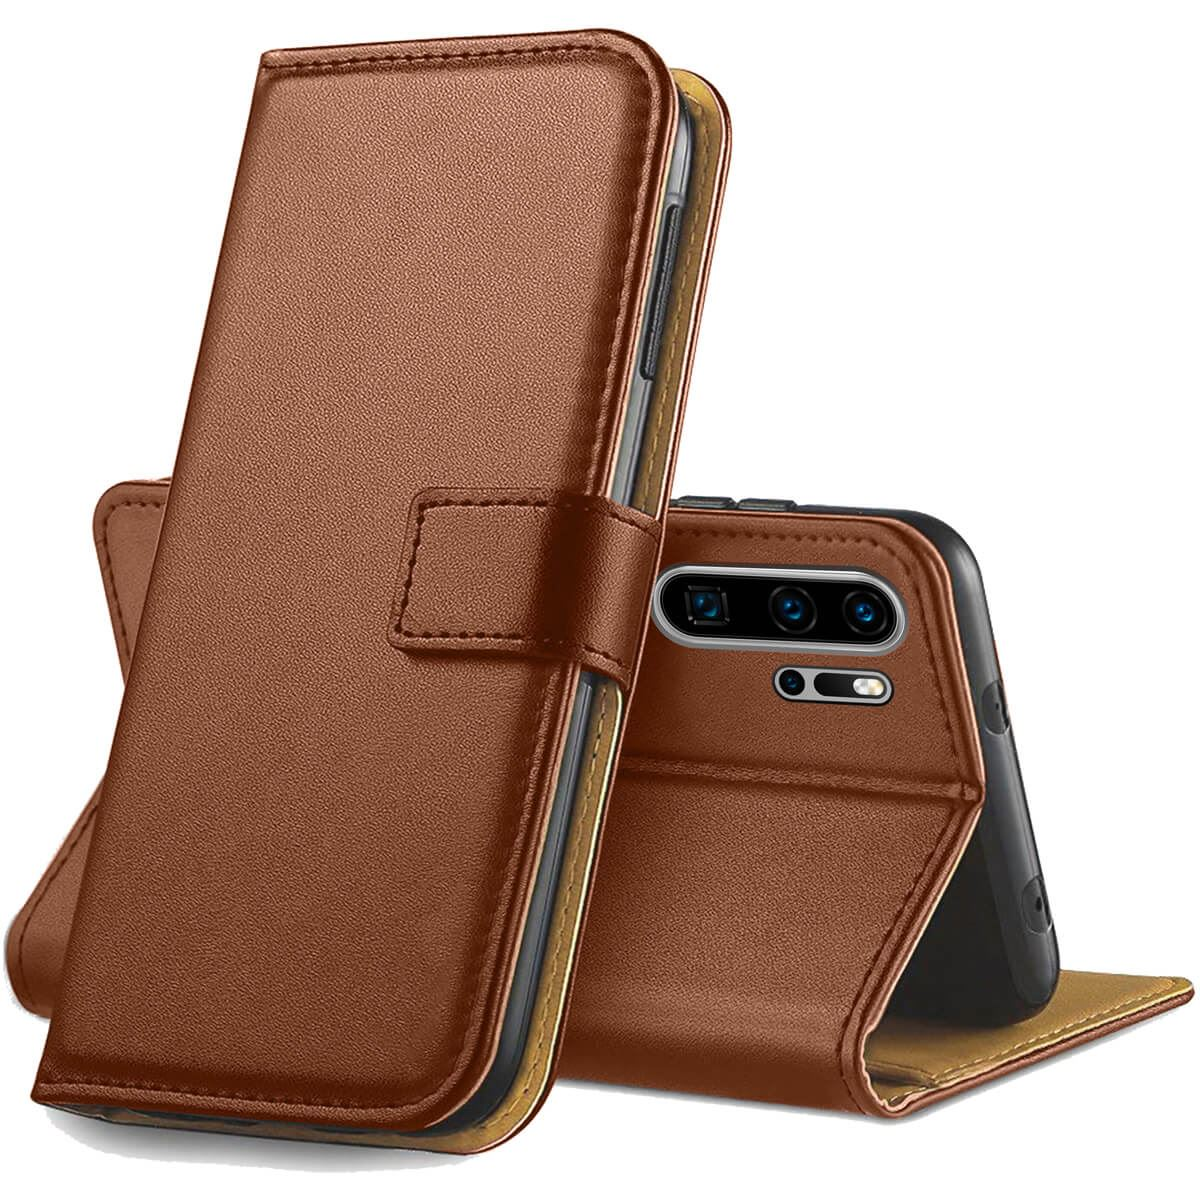 Flip-Cover-For-Huawei-P30-Lite-Pro-Leather-Wallet-Style-With-Magnetic-Closure thumbnail 7